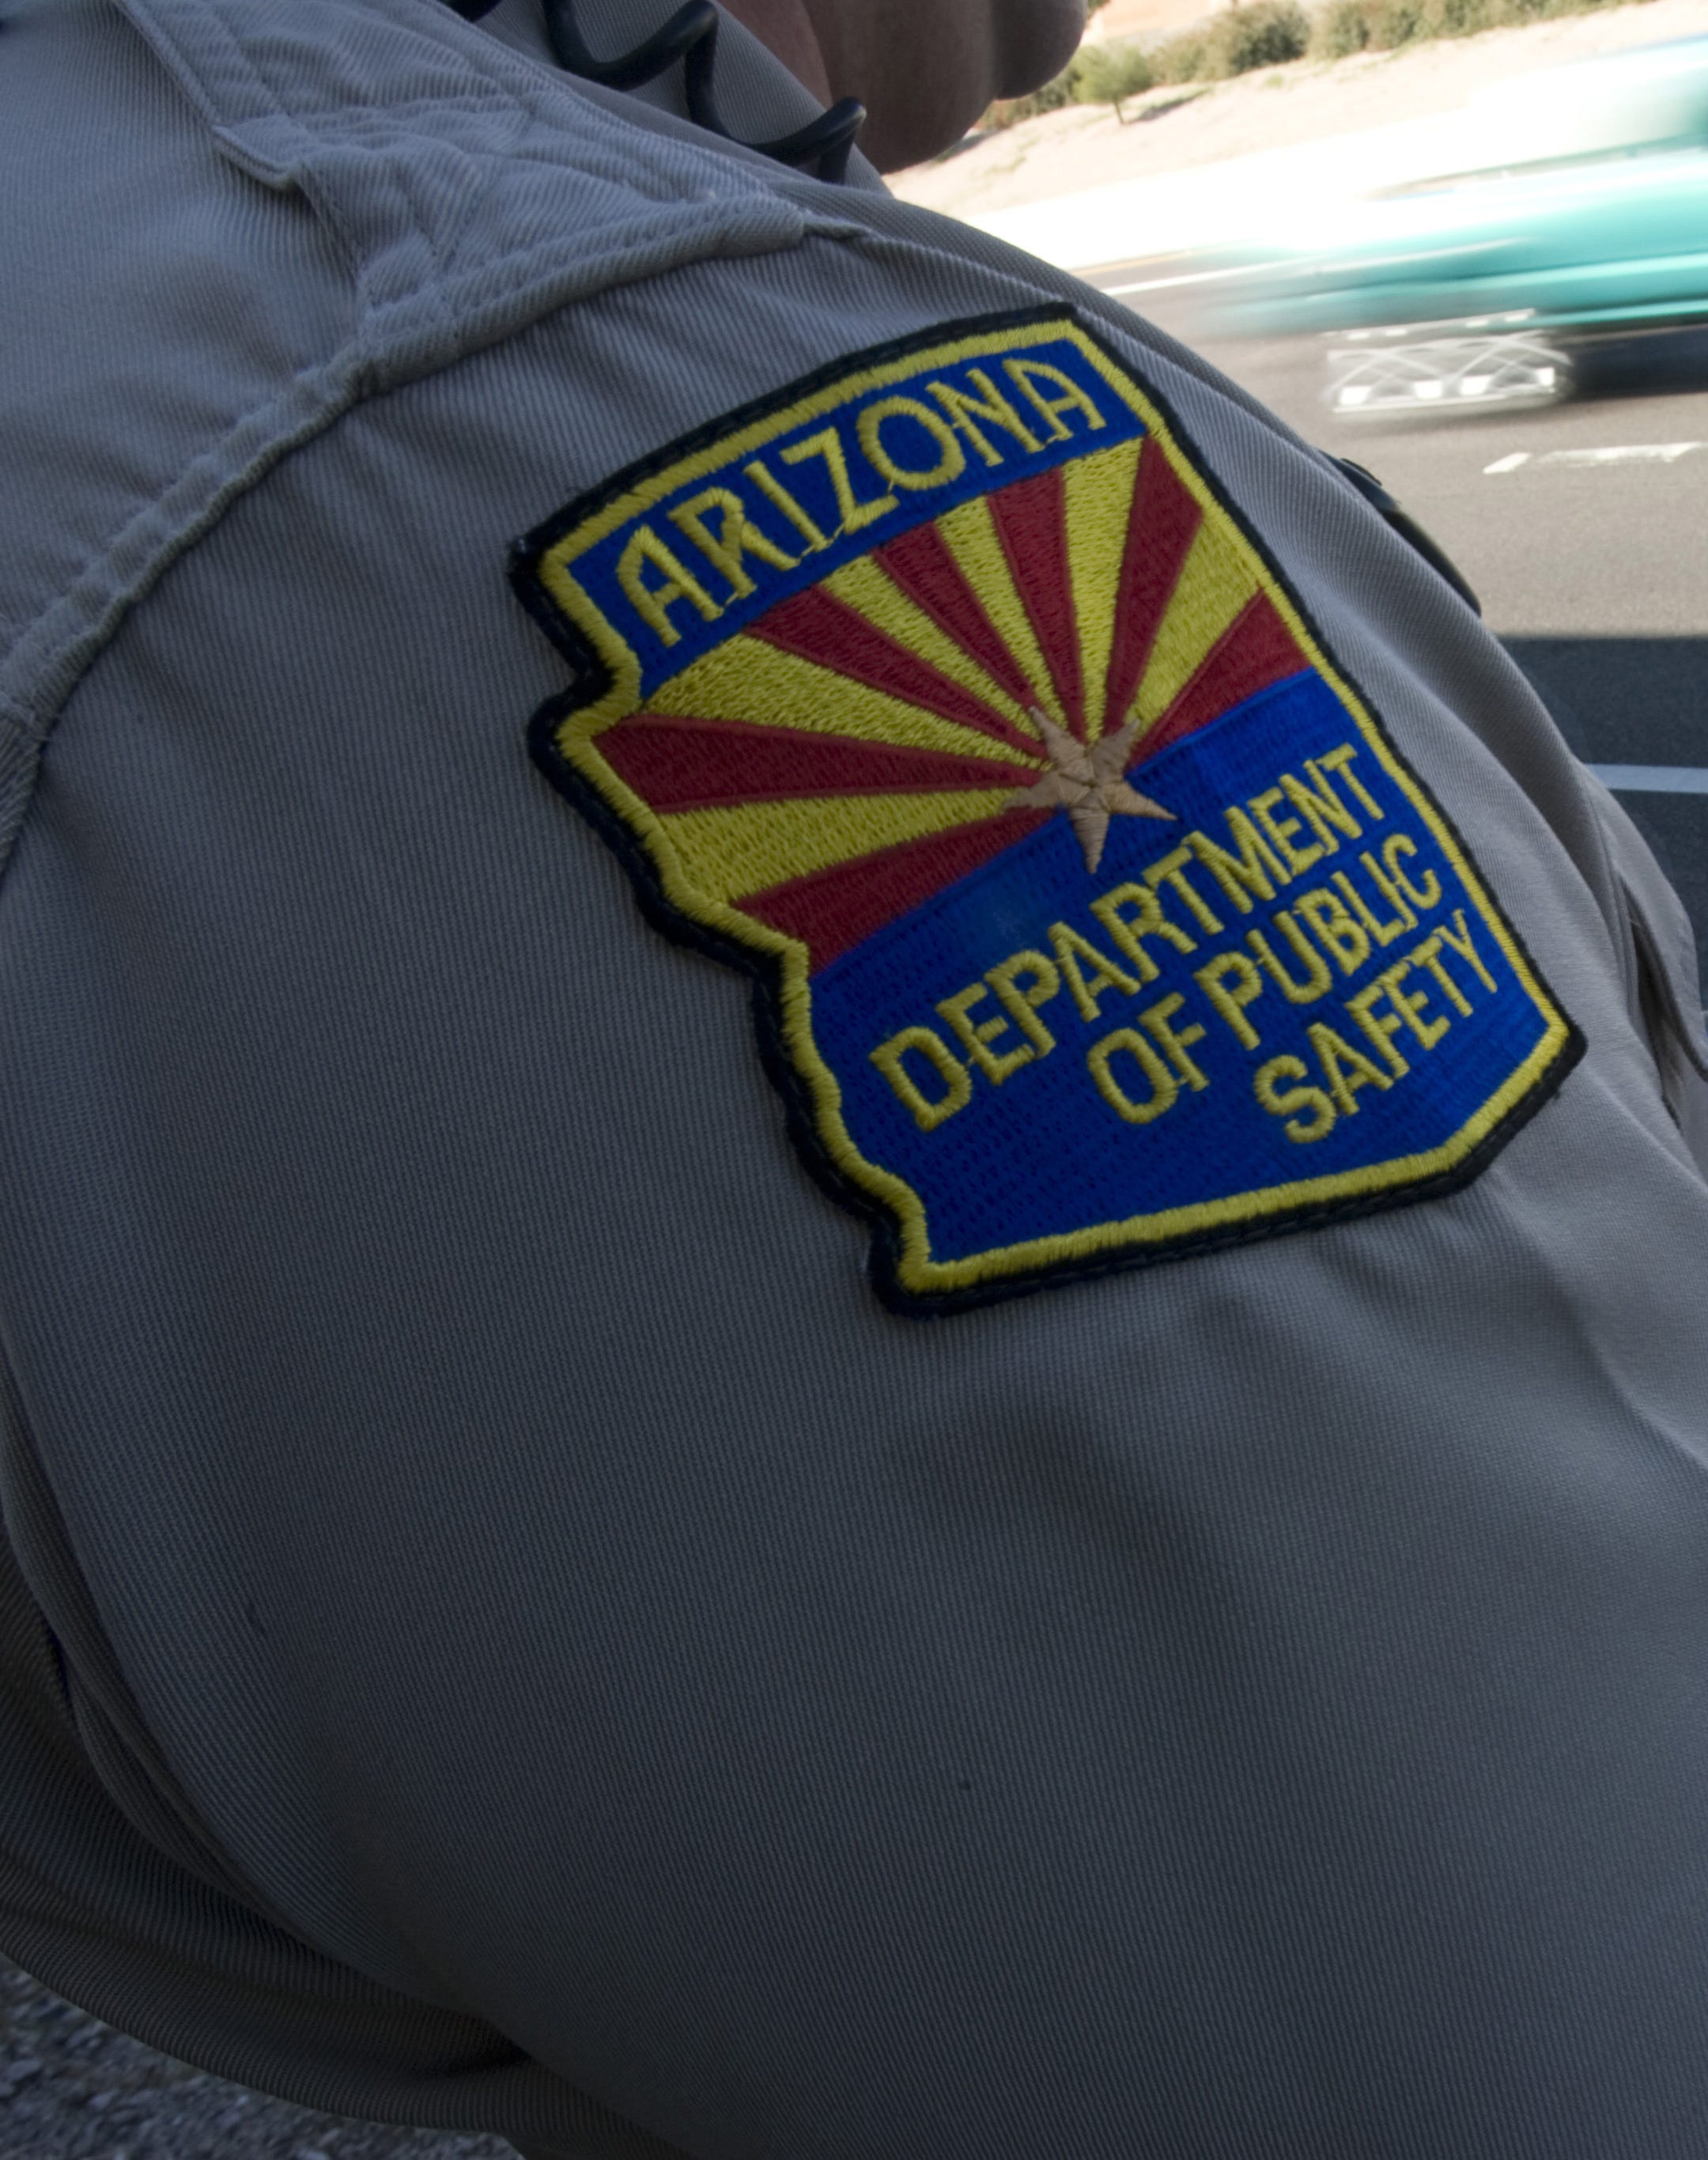 Report cites Arizona Department of Public Safety missteps in freeway pursuit involving deputy director